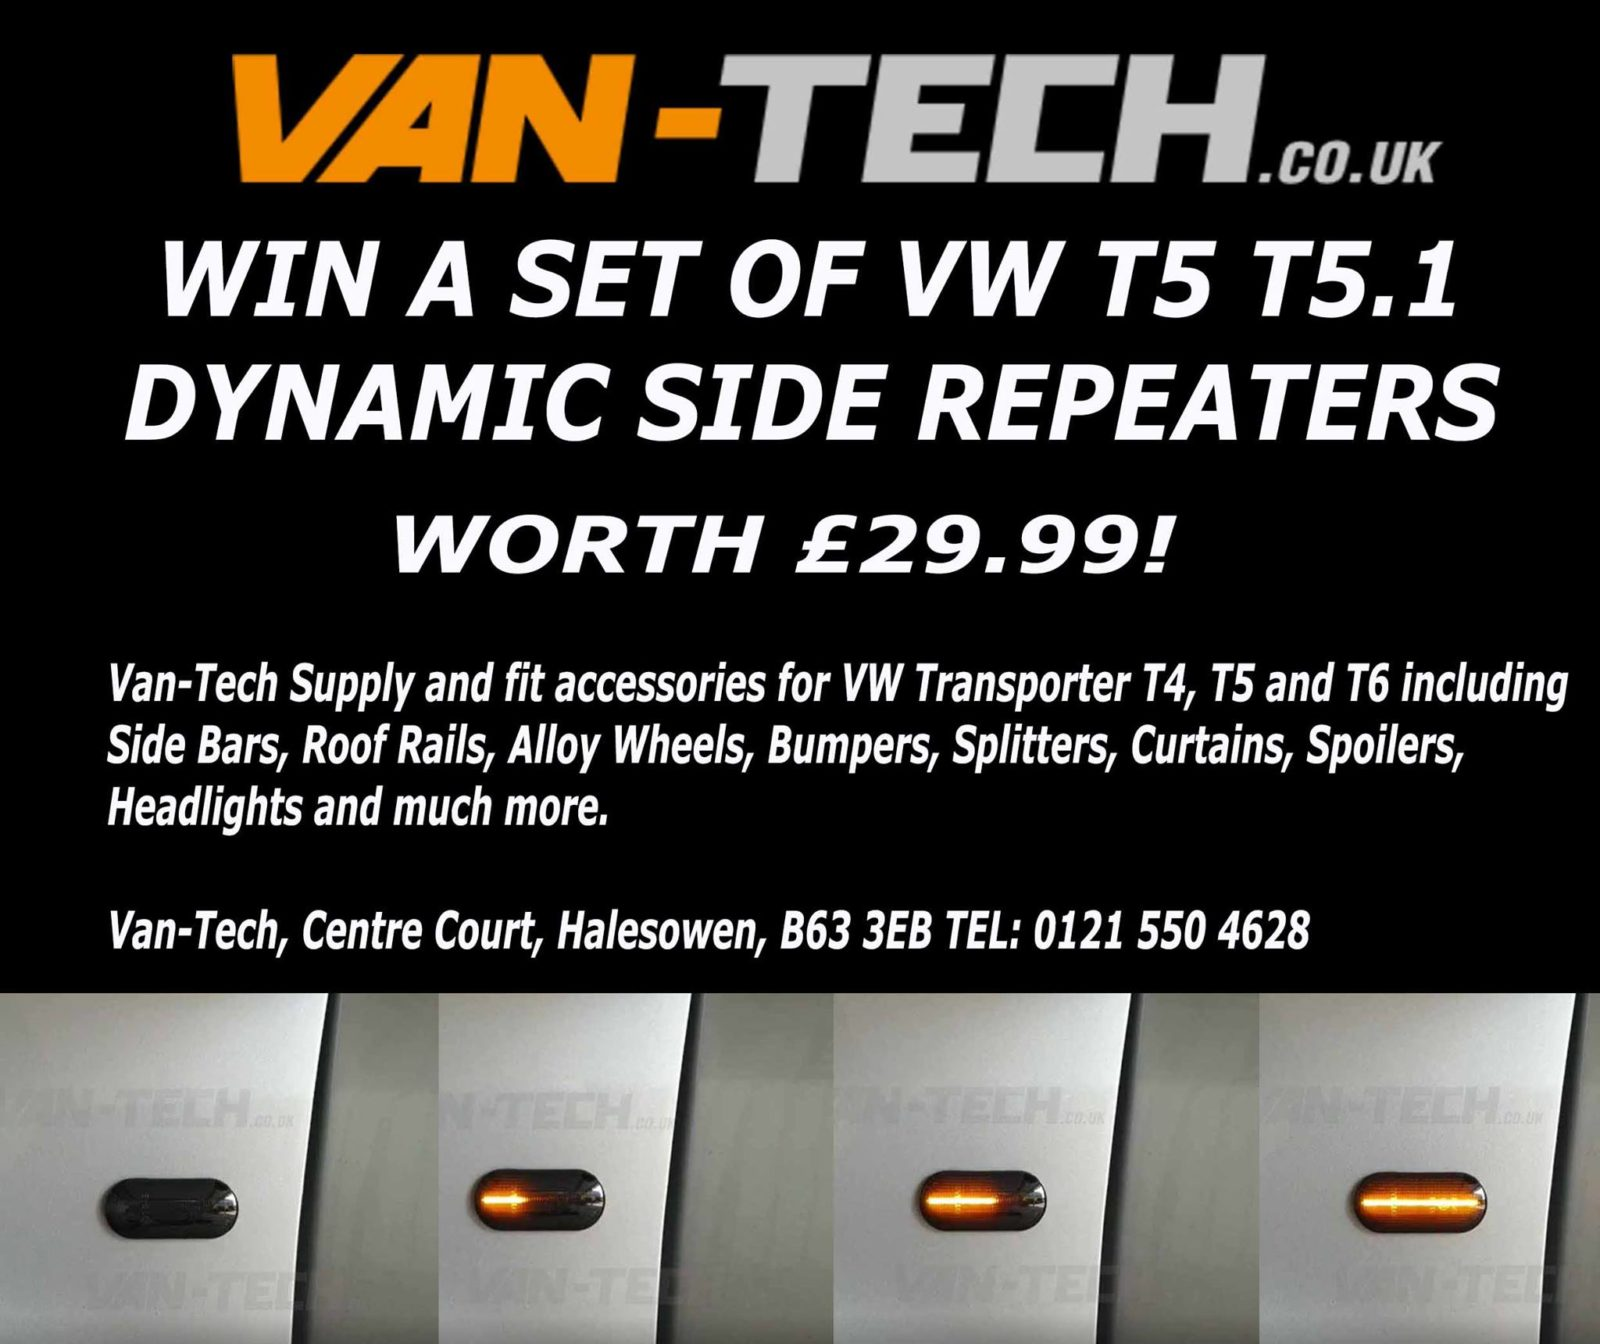 Van-Tech Competition Win a set Black Smoked Side Repeaters!